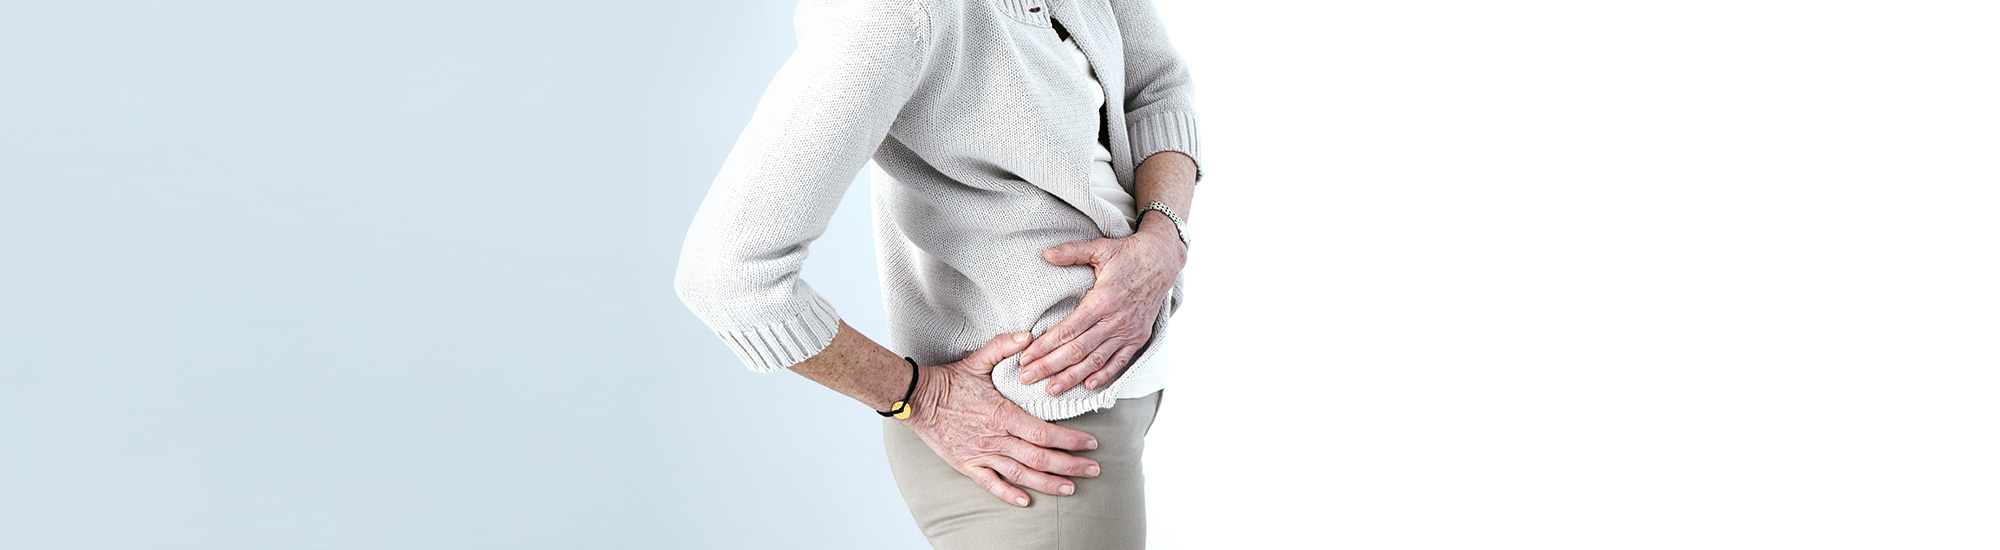 Ayurvedic treatment for Hip pain FAQs